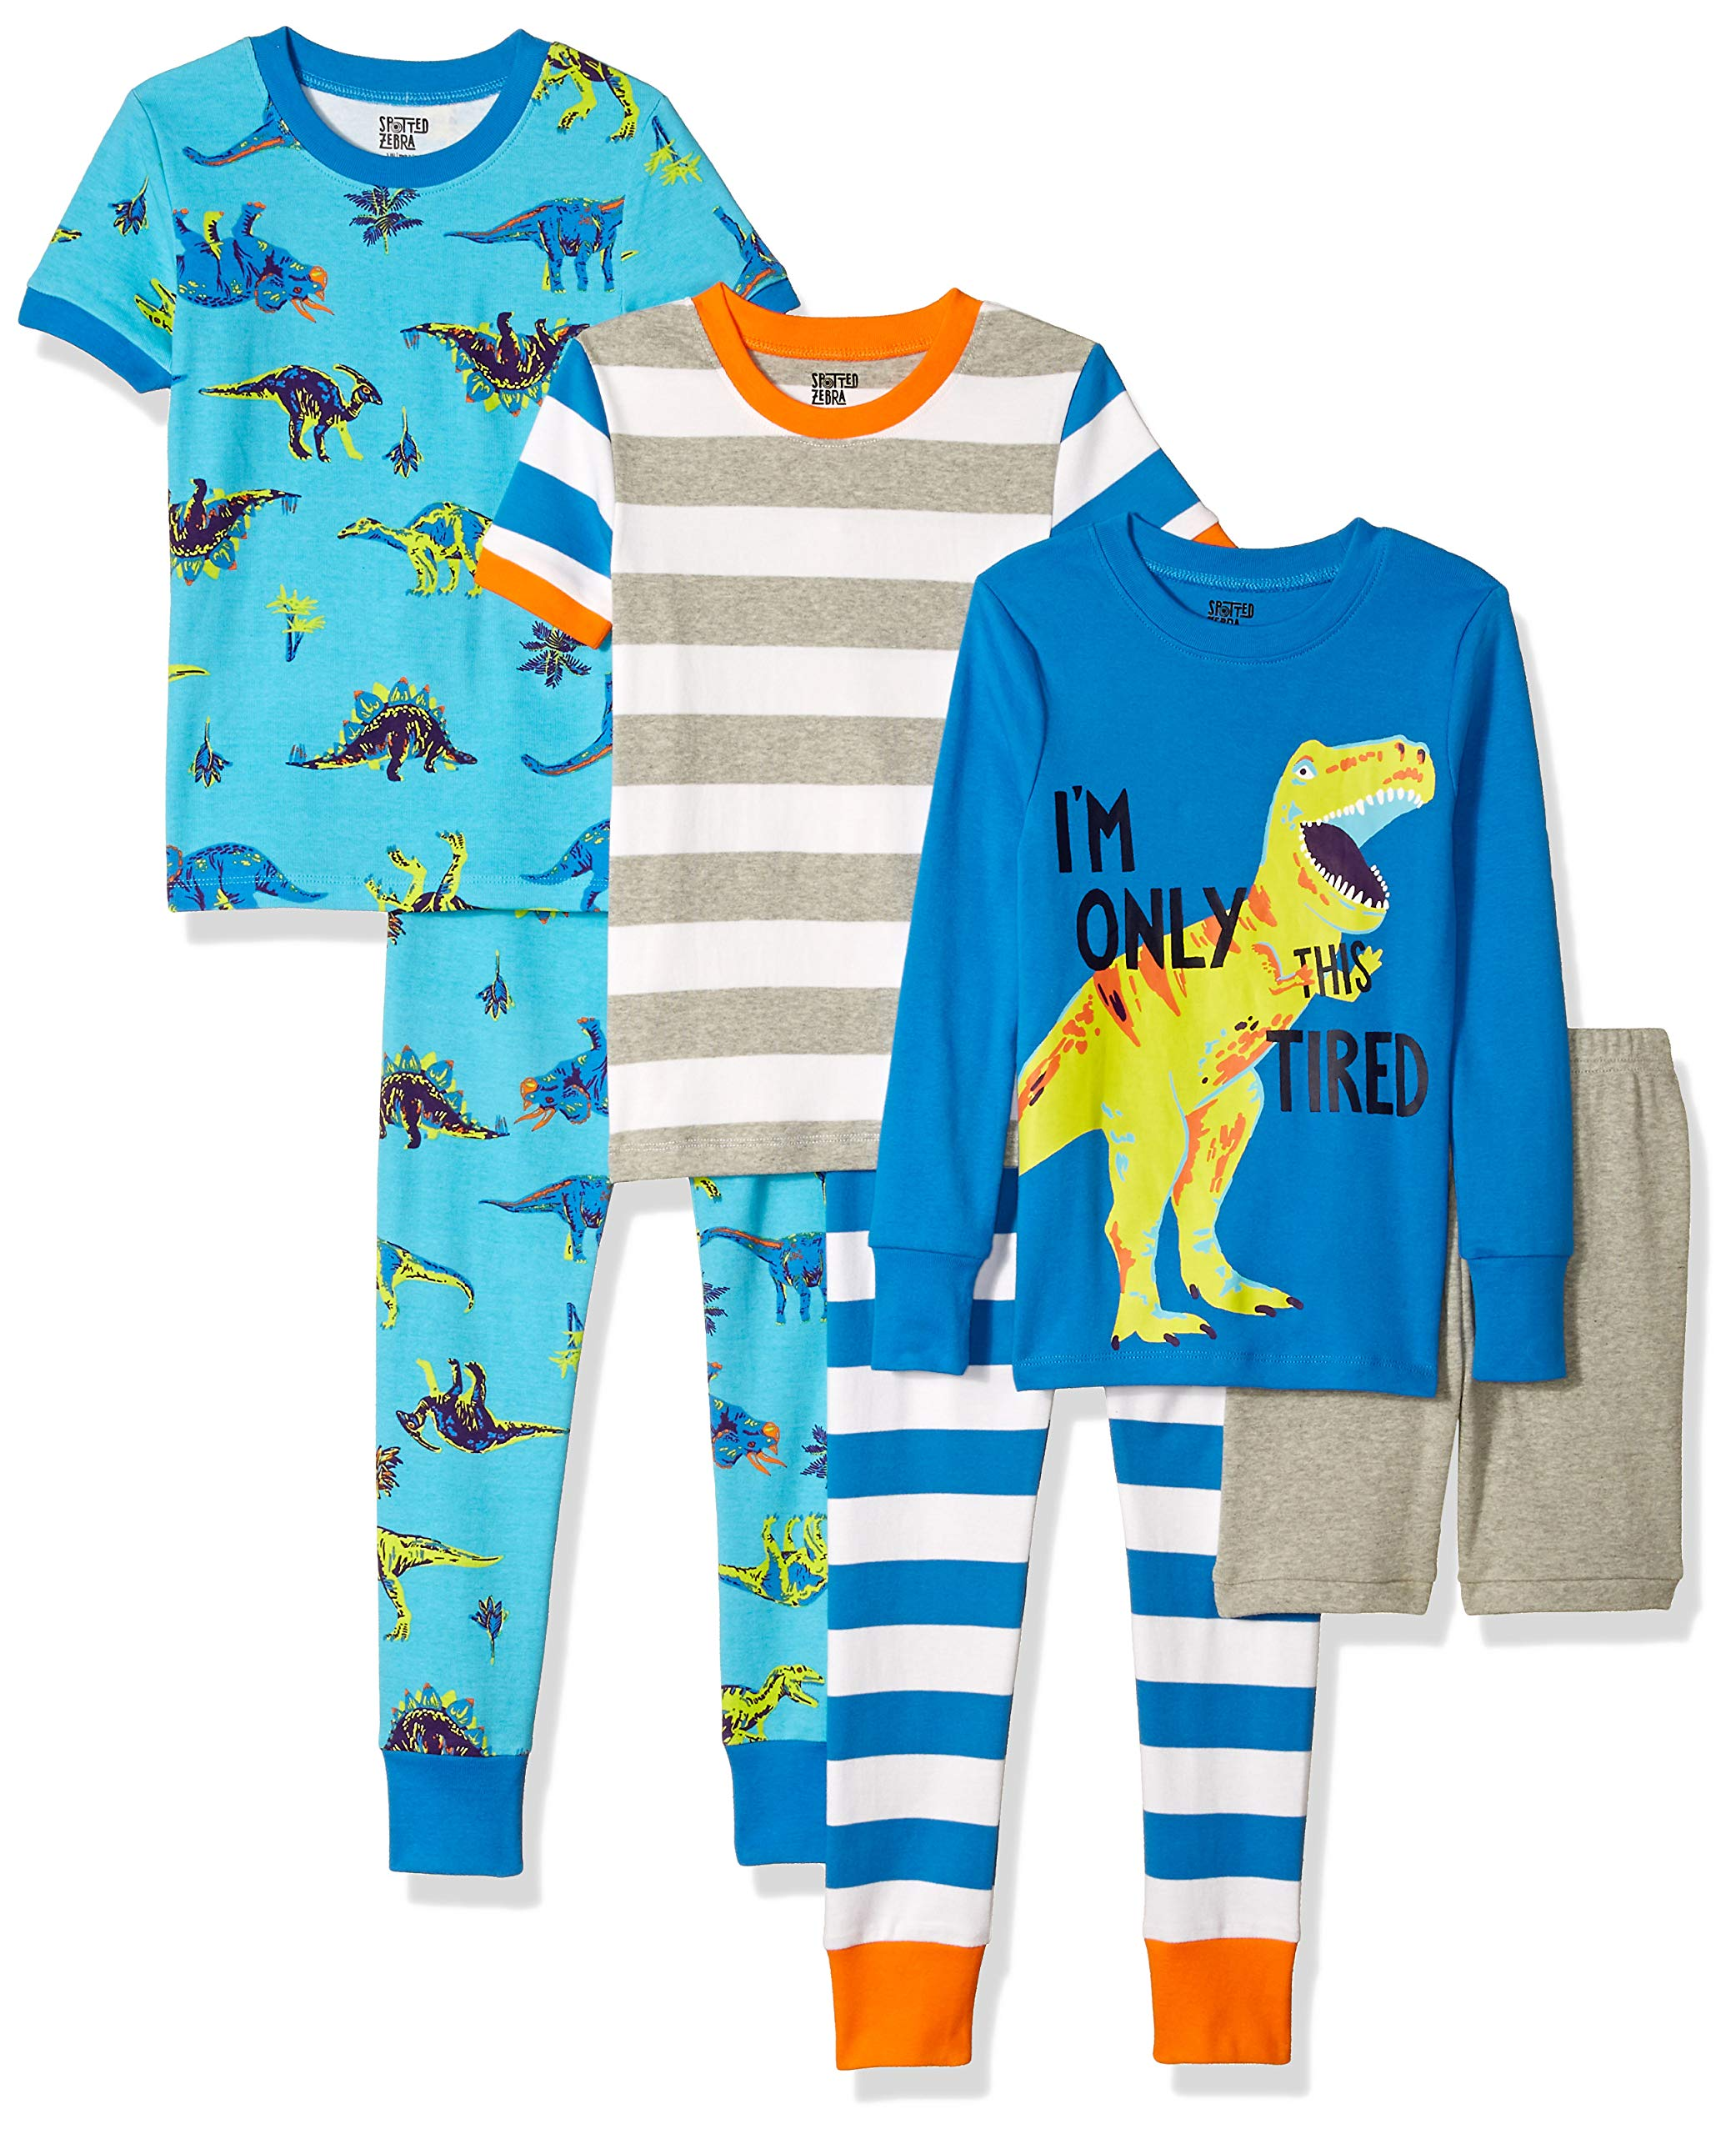 Spotted Zebra Little Kids' 6-Piece Snug-Fit Cotton Pajama Set, Dinoland, Small (6-7)